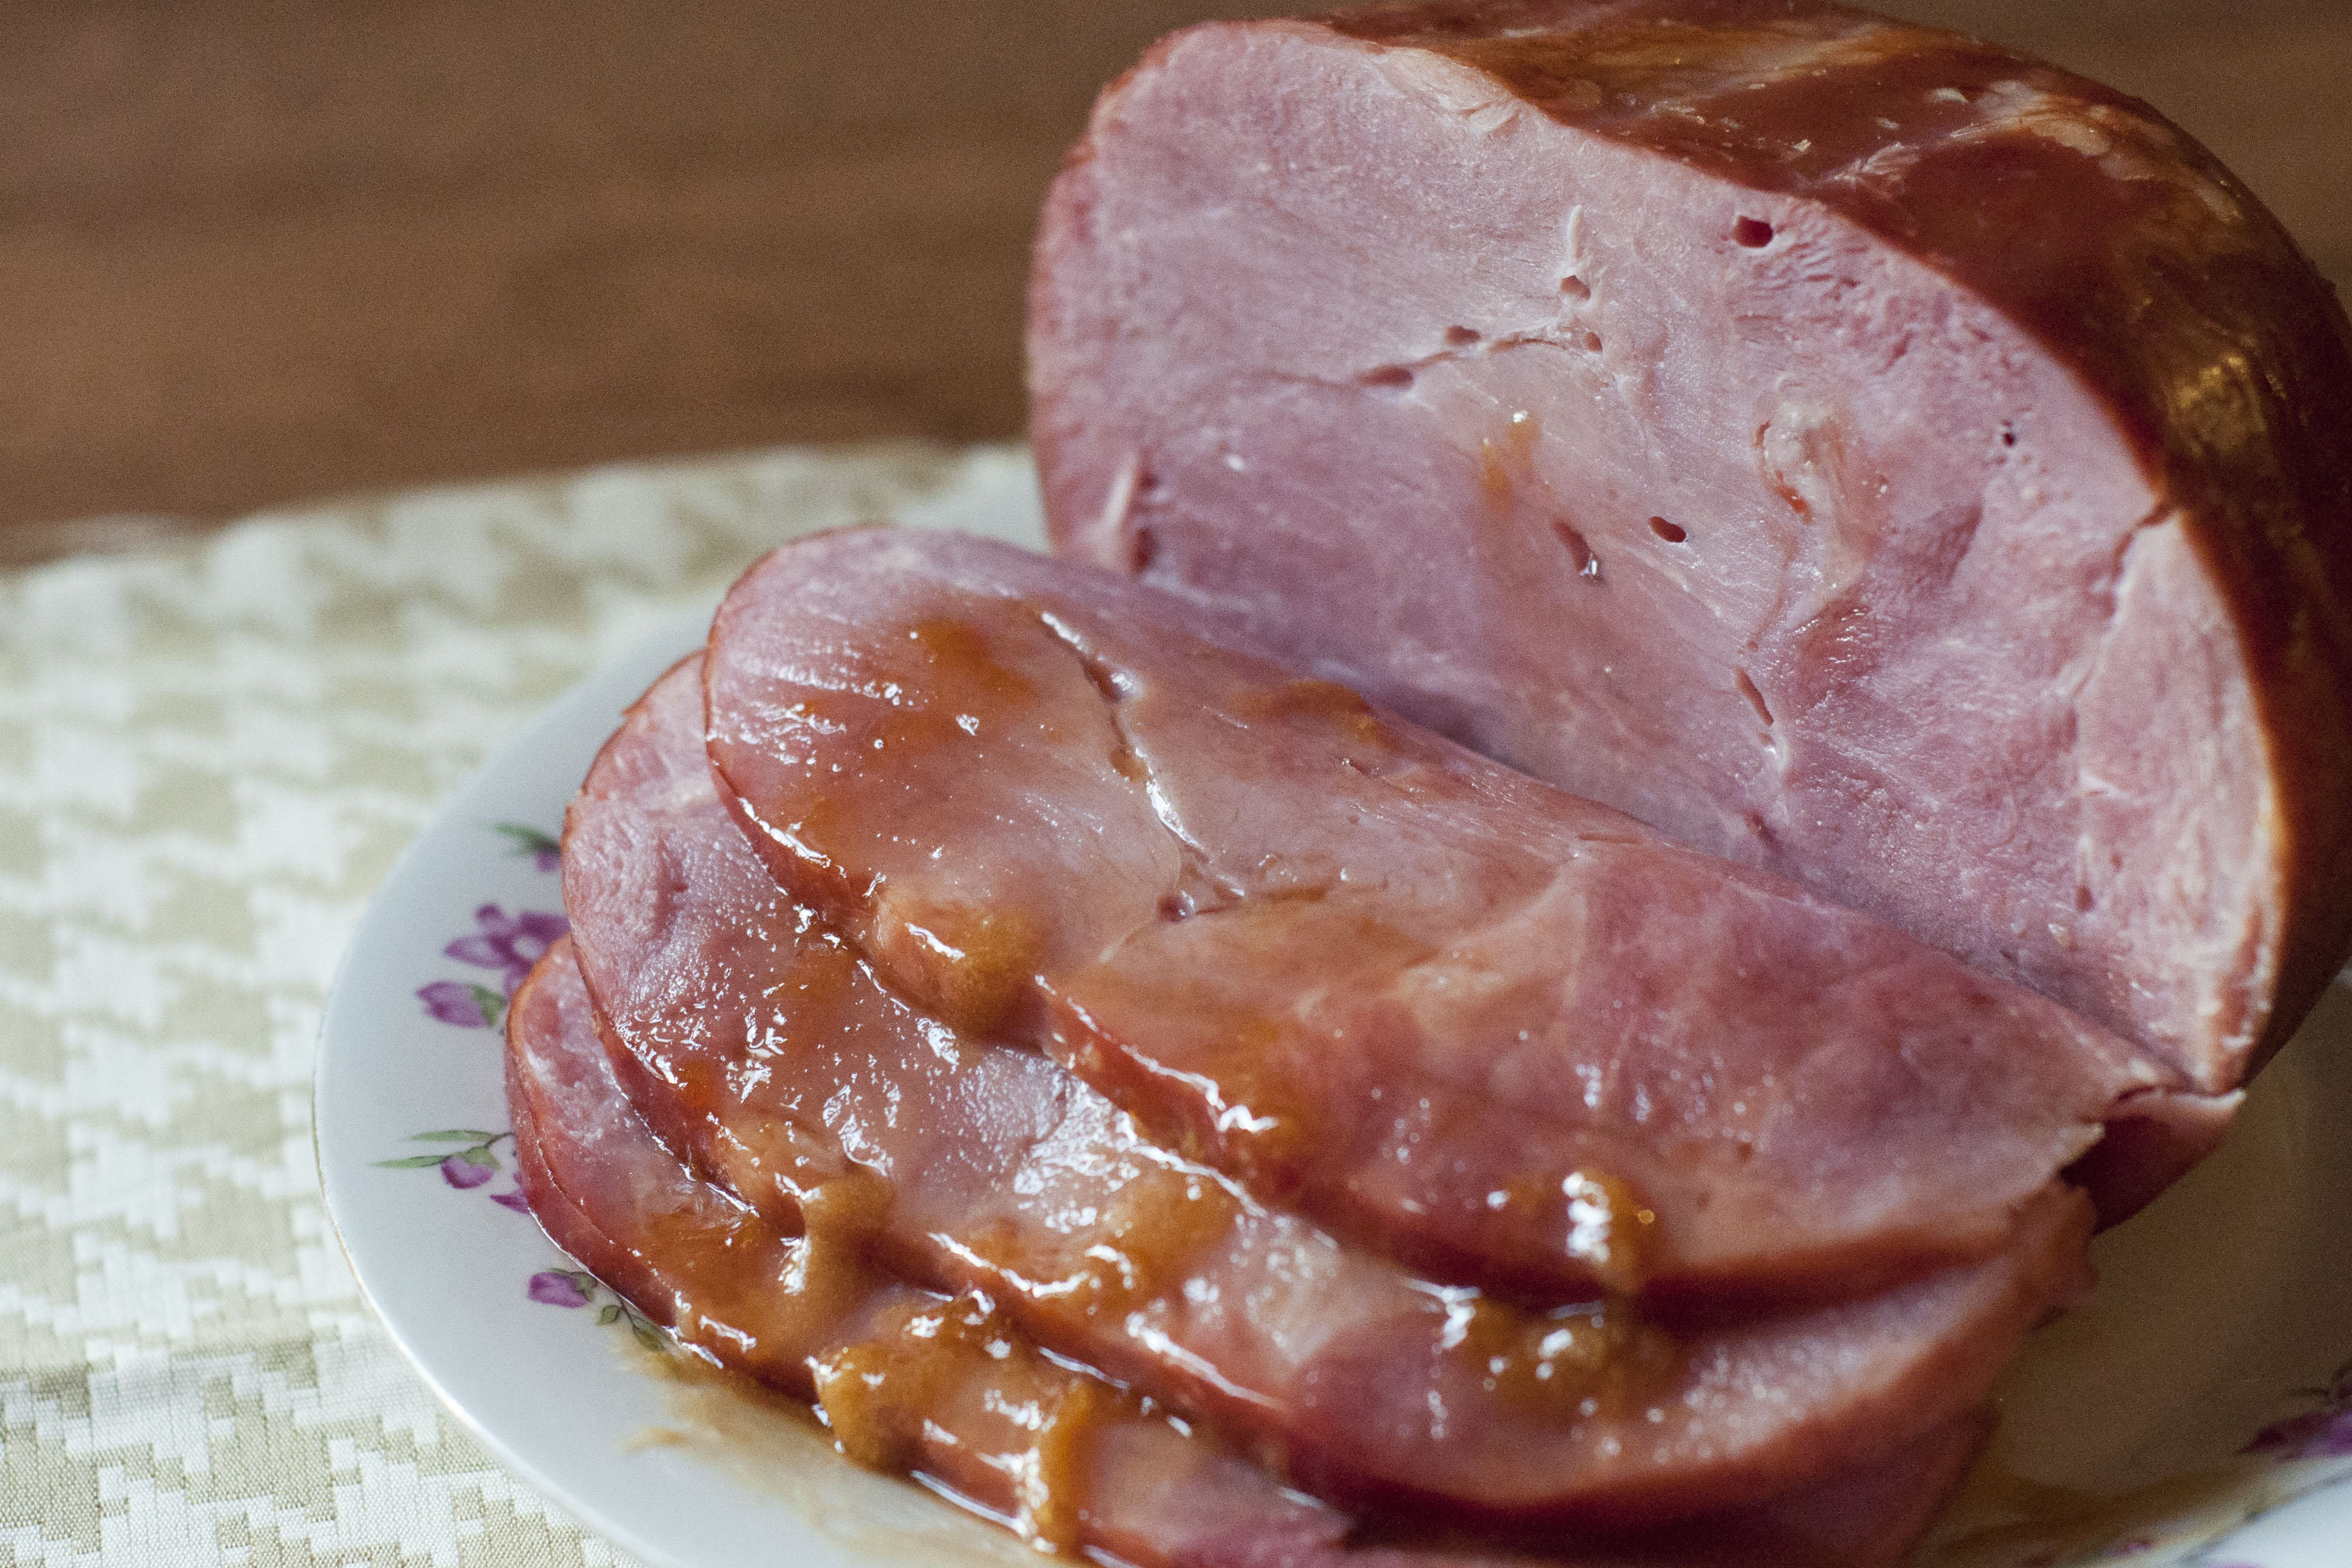 This photo shows a partially sliced ham from Petit Jean Meats with a drizzle of apricot glaze.